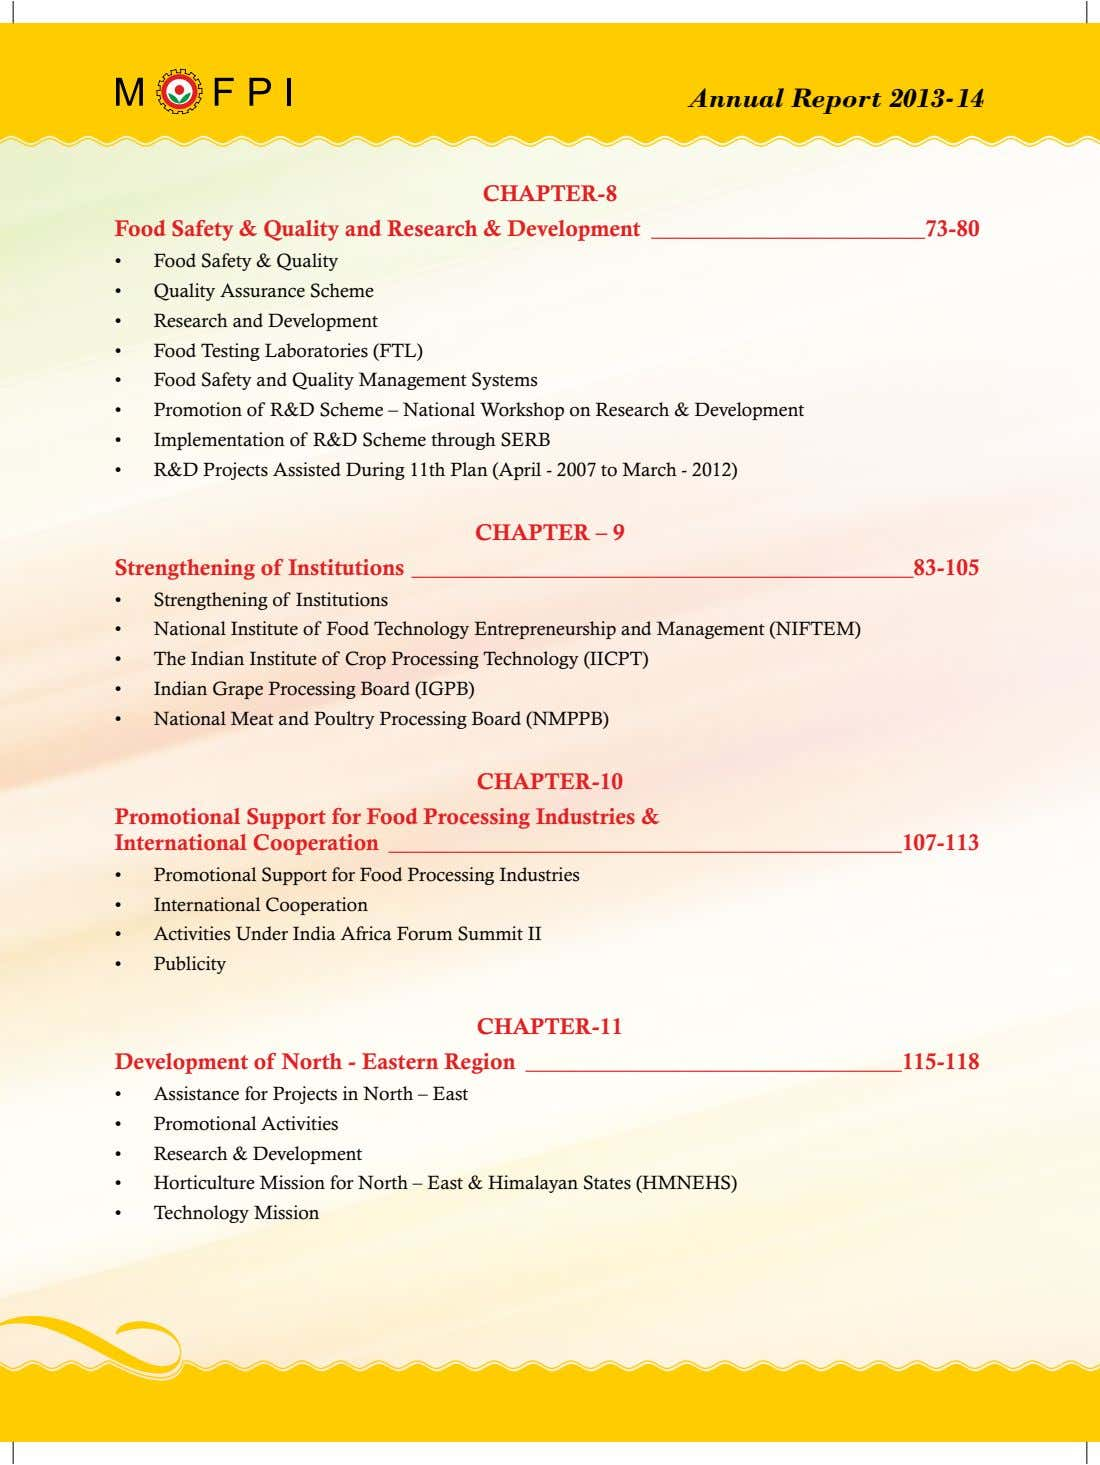 Annual Report 2013-14 CHAPTER-8 Food Safety & Quality and Research & Development 73-80 • Food